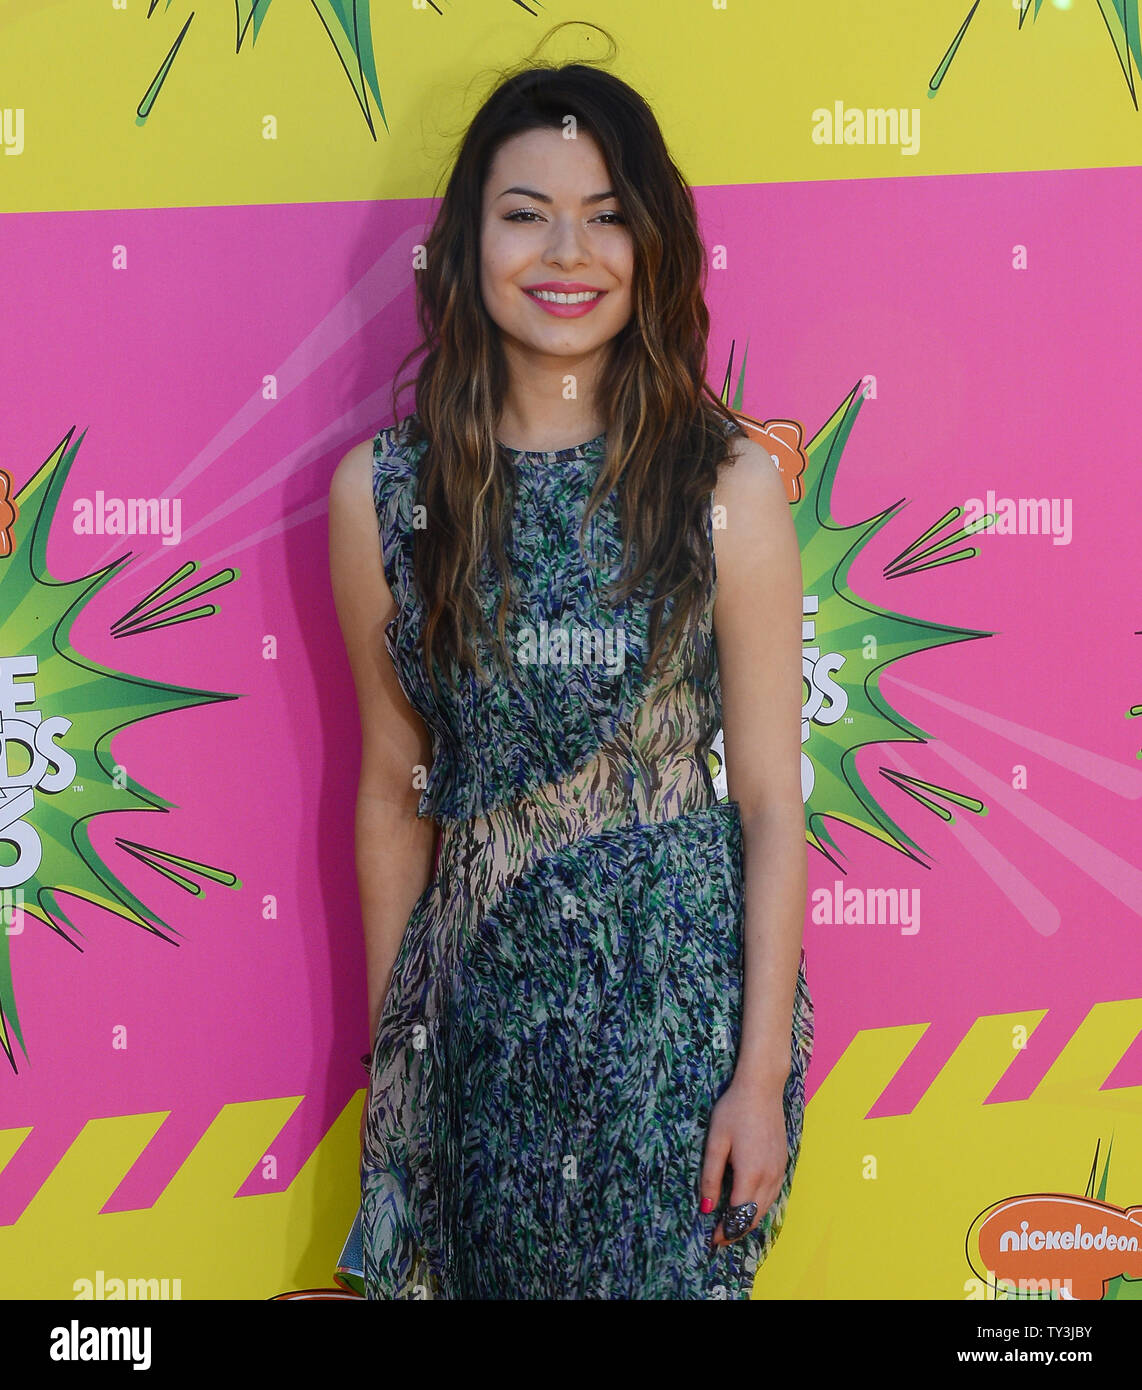 Actress Miranda Cosgrove arrives for Nickelodeon's 26th annual Kids' Choice Awards at the Galen Center in Los Angeles on March 23, 2013. UPI/Jim Ruymen - Stock Image